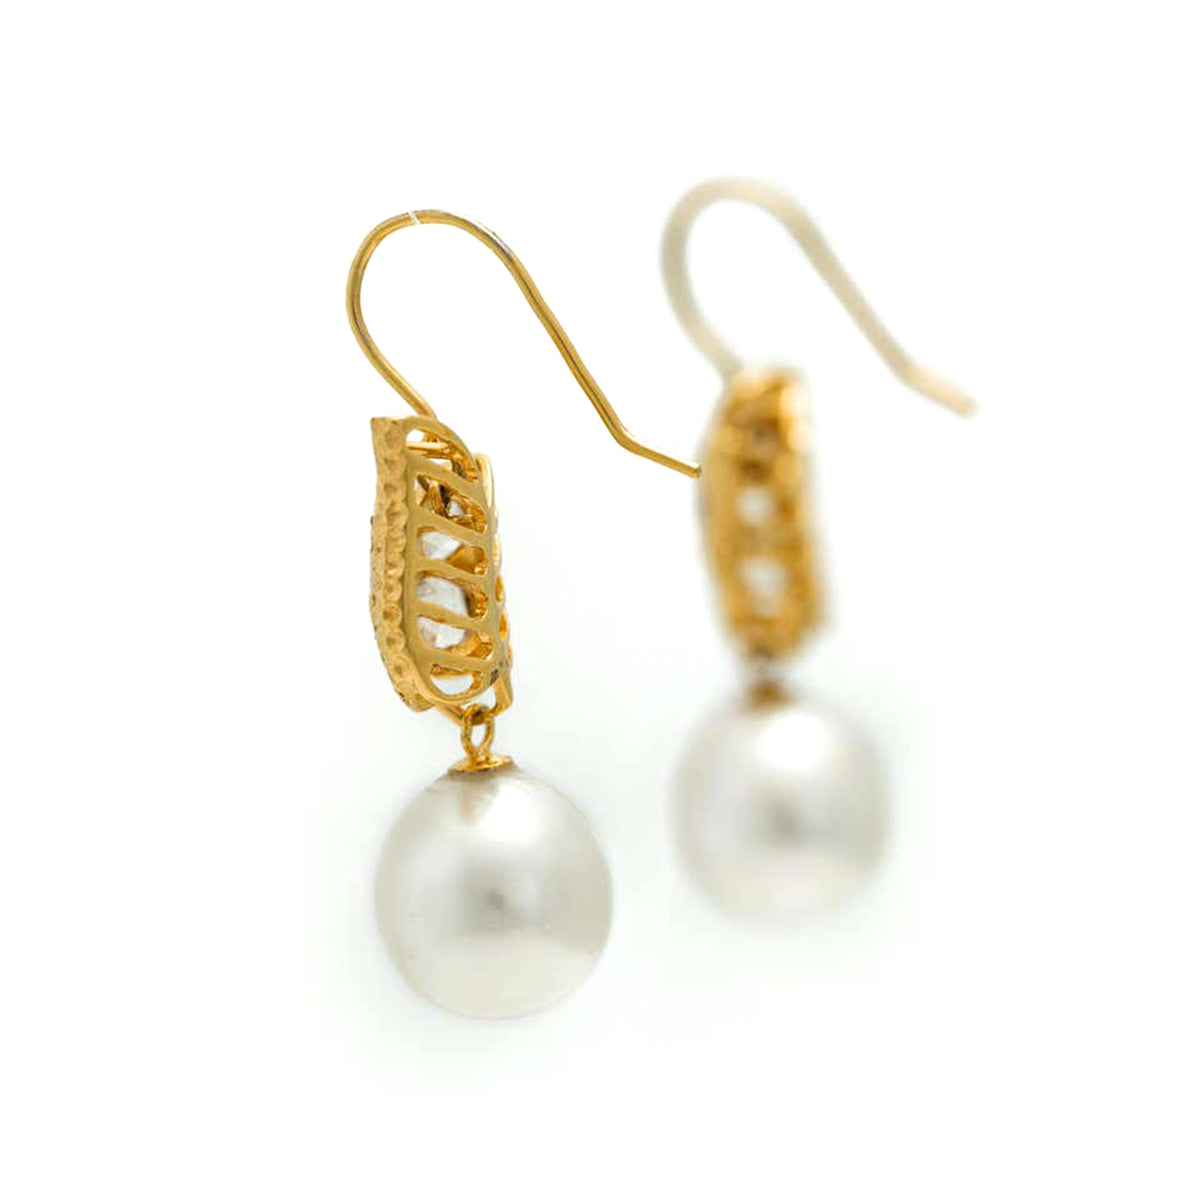 Pair of South Sea Pearl and Rose Cut Diamond Earrings in 18 Karat Yellow Gold